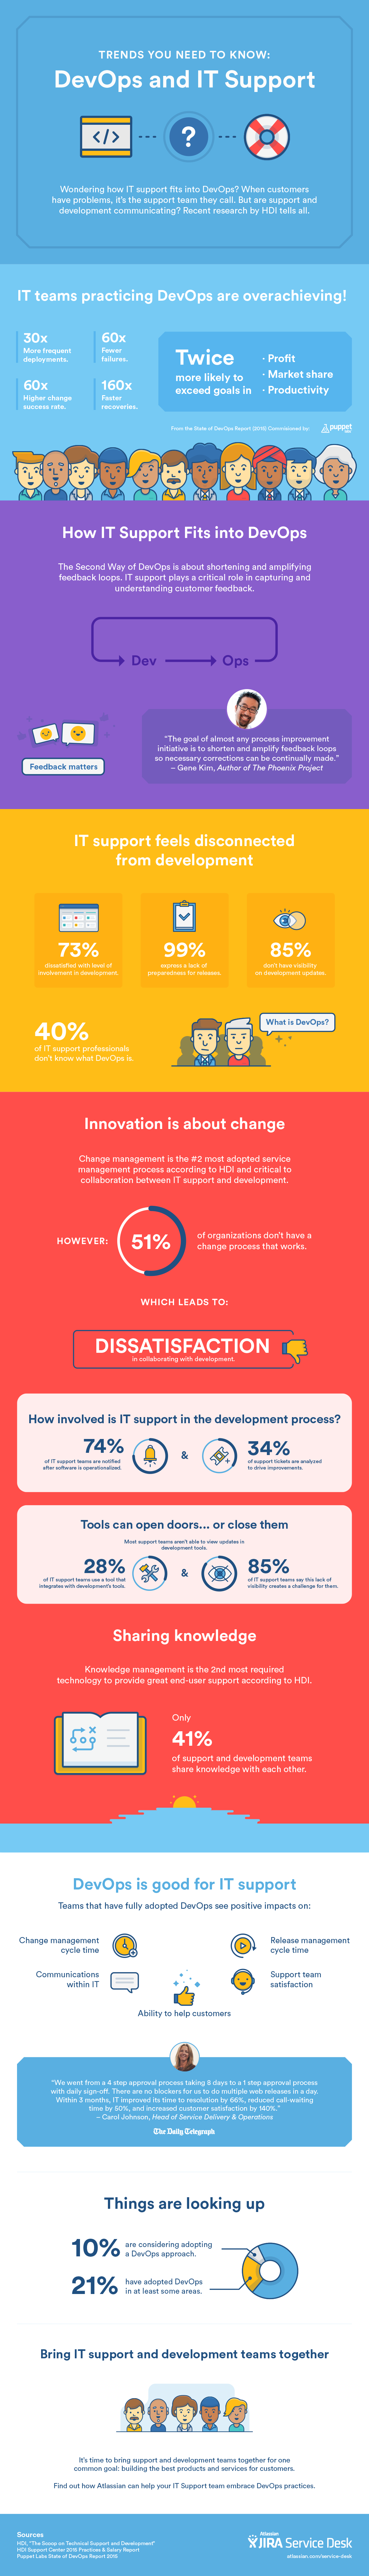 Infographic showing statistics about DevOps and IT trends